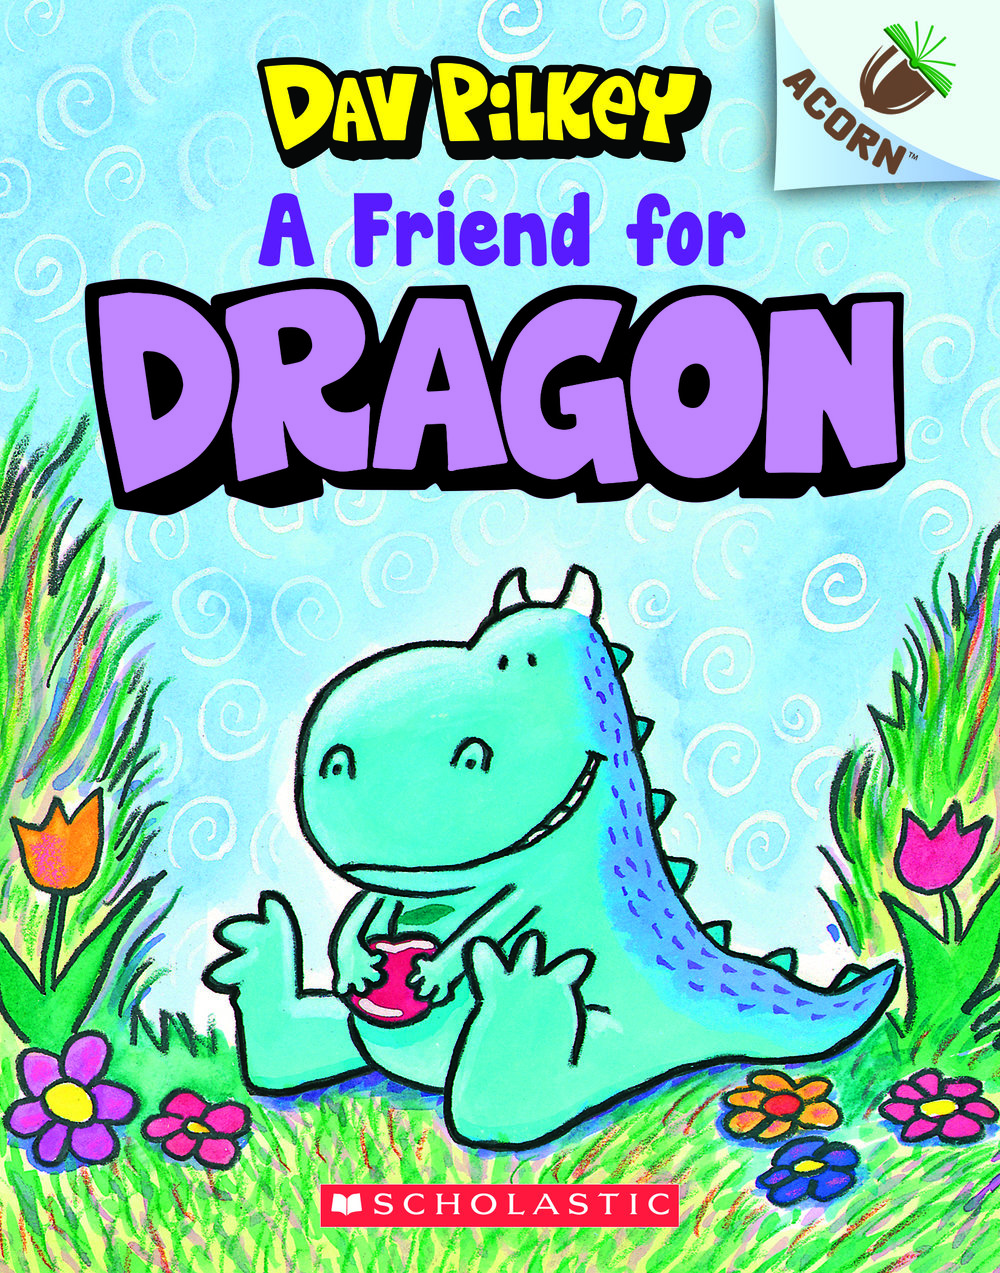 A Friend for Dragon by Dav Pilkey